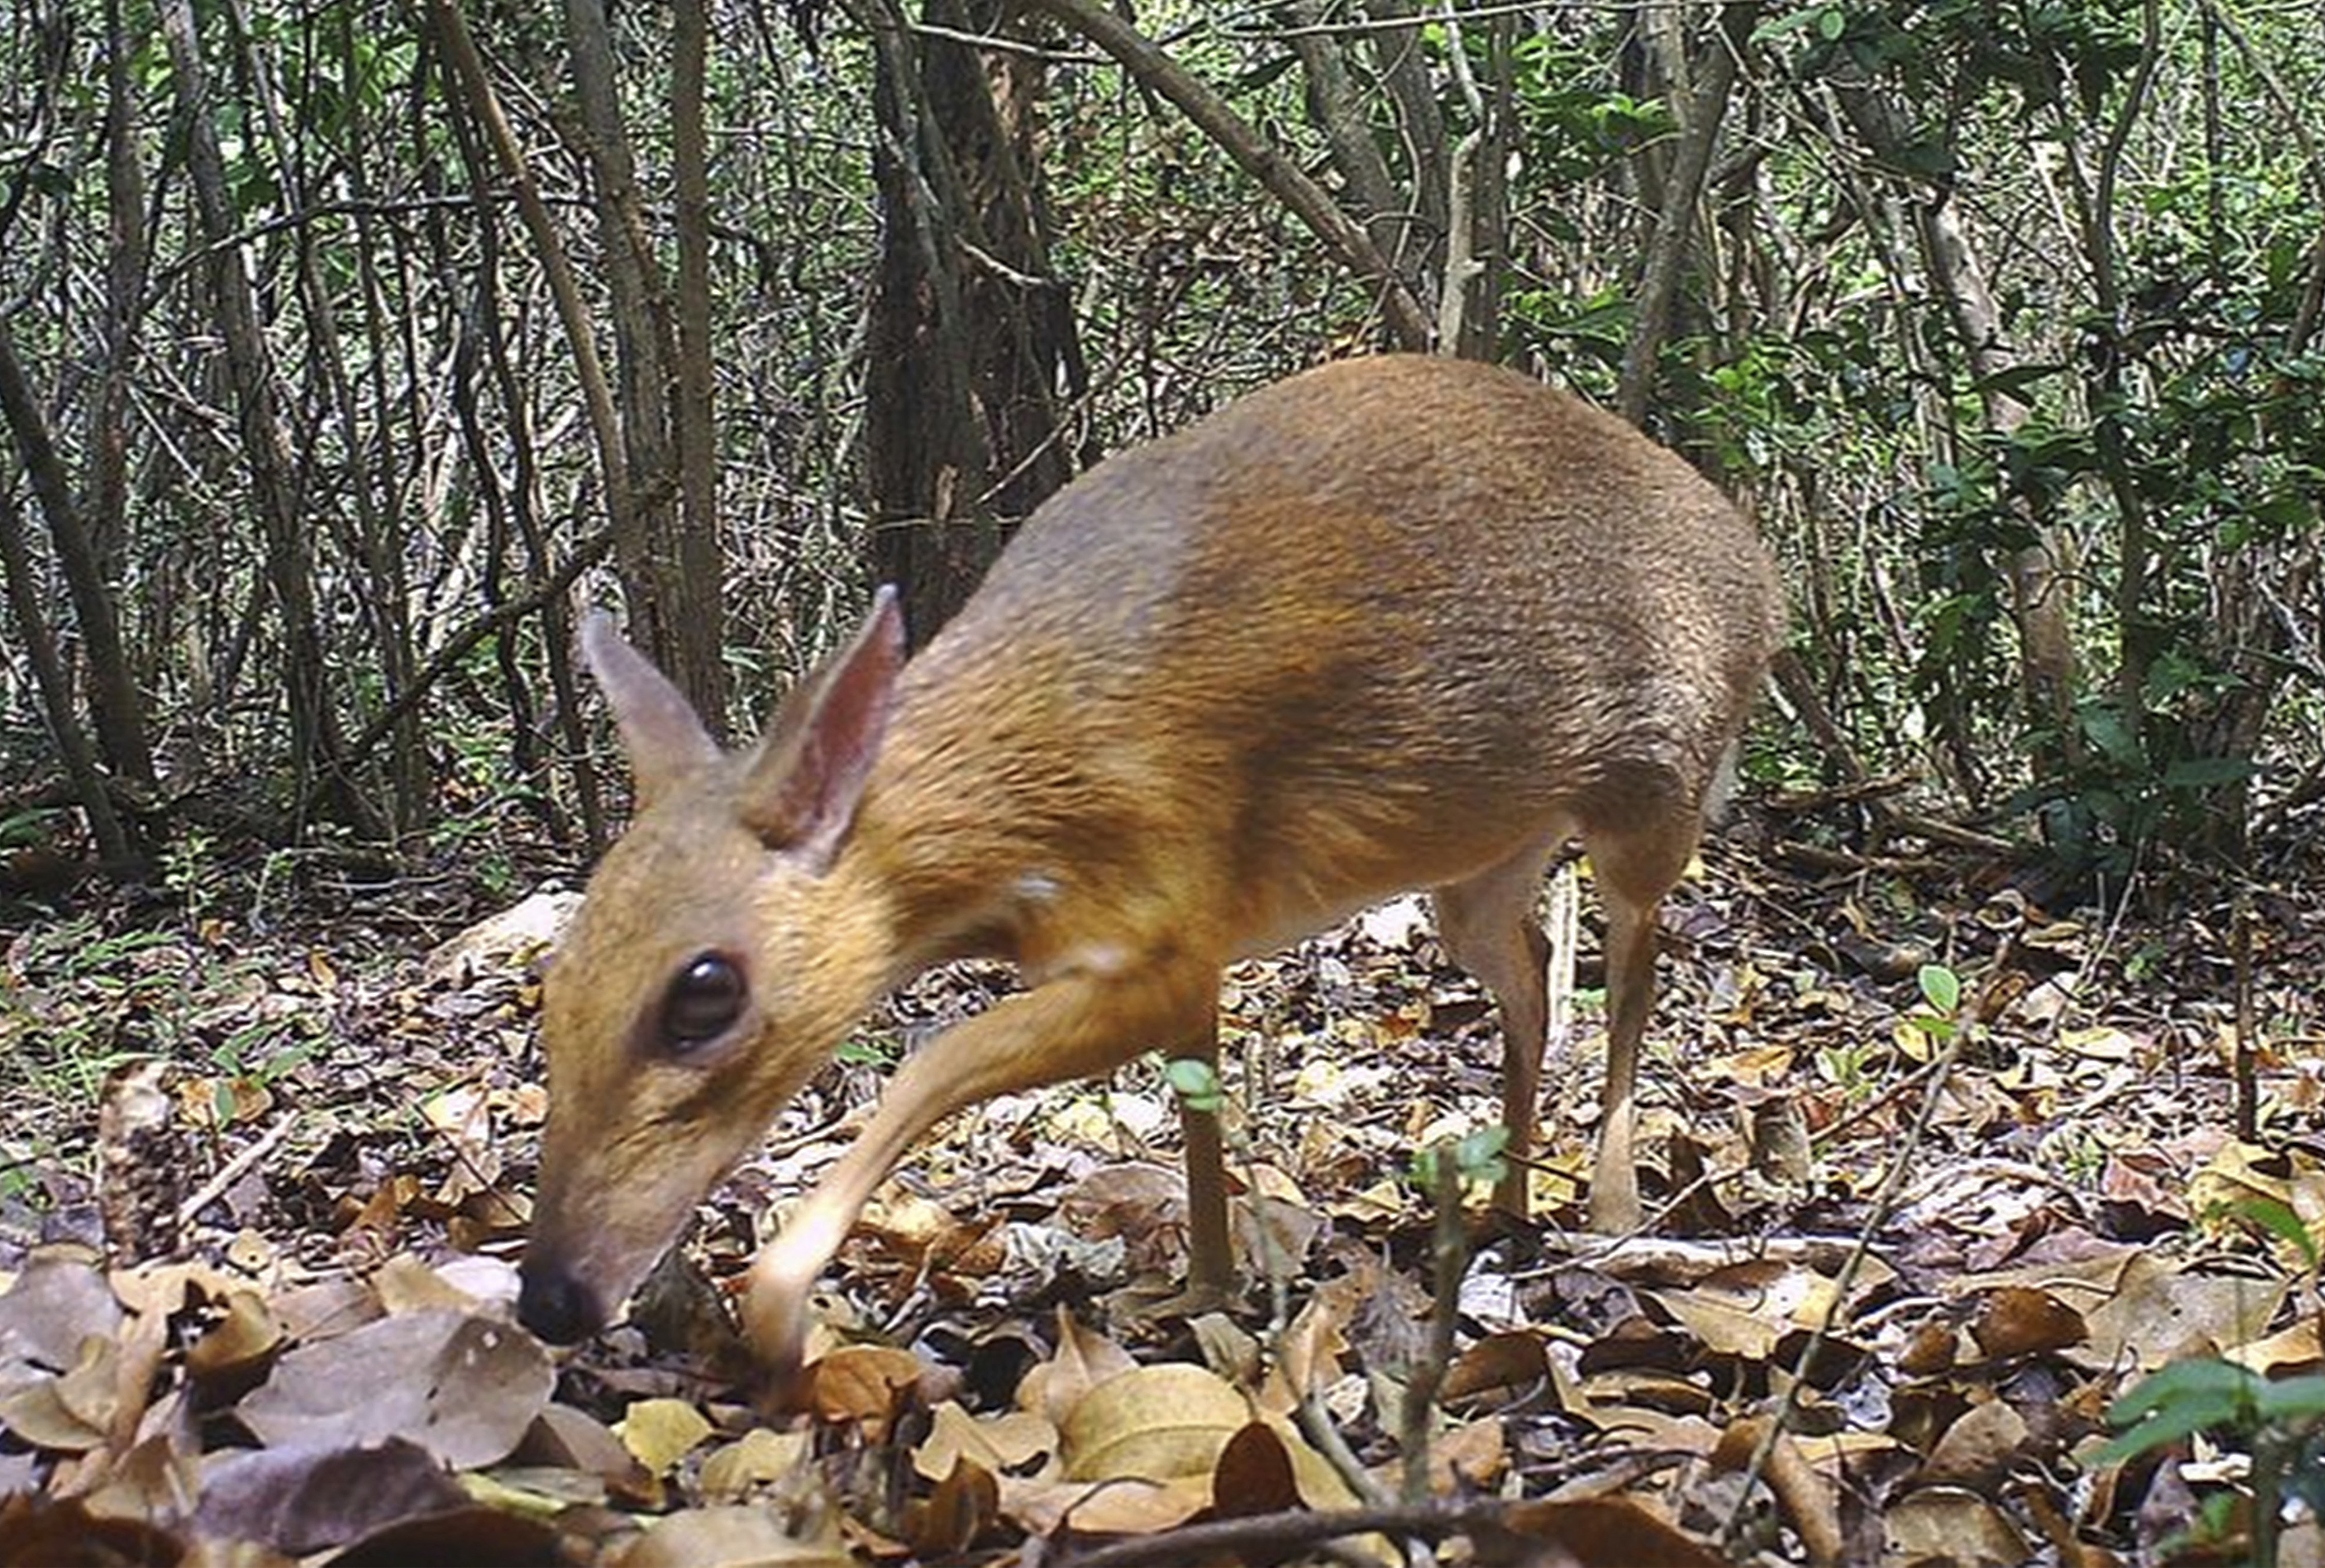 Rare deer-like species photographed for first time in wild